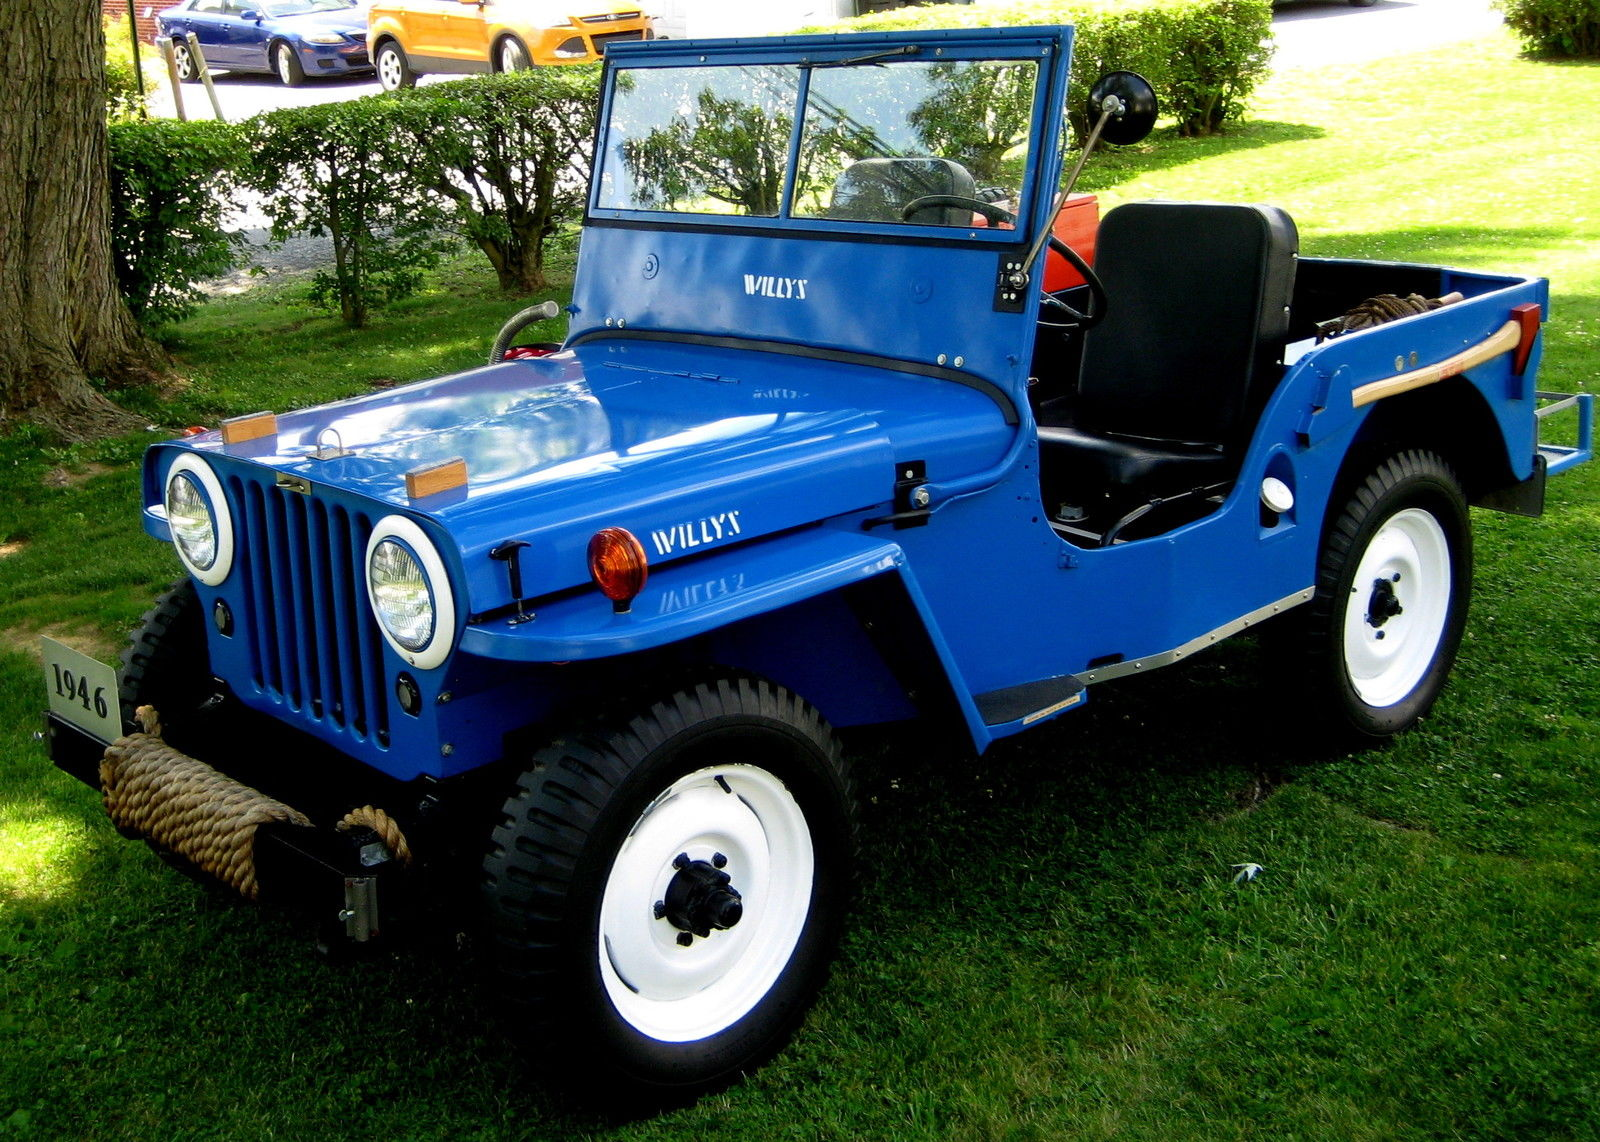 Original 1946 Willys CJ2 Jeep offroad for sale